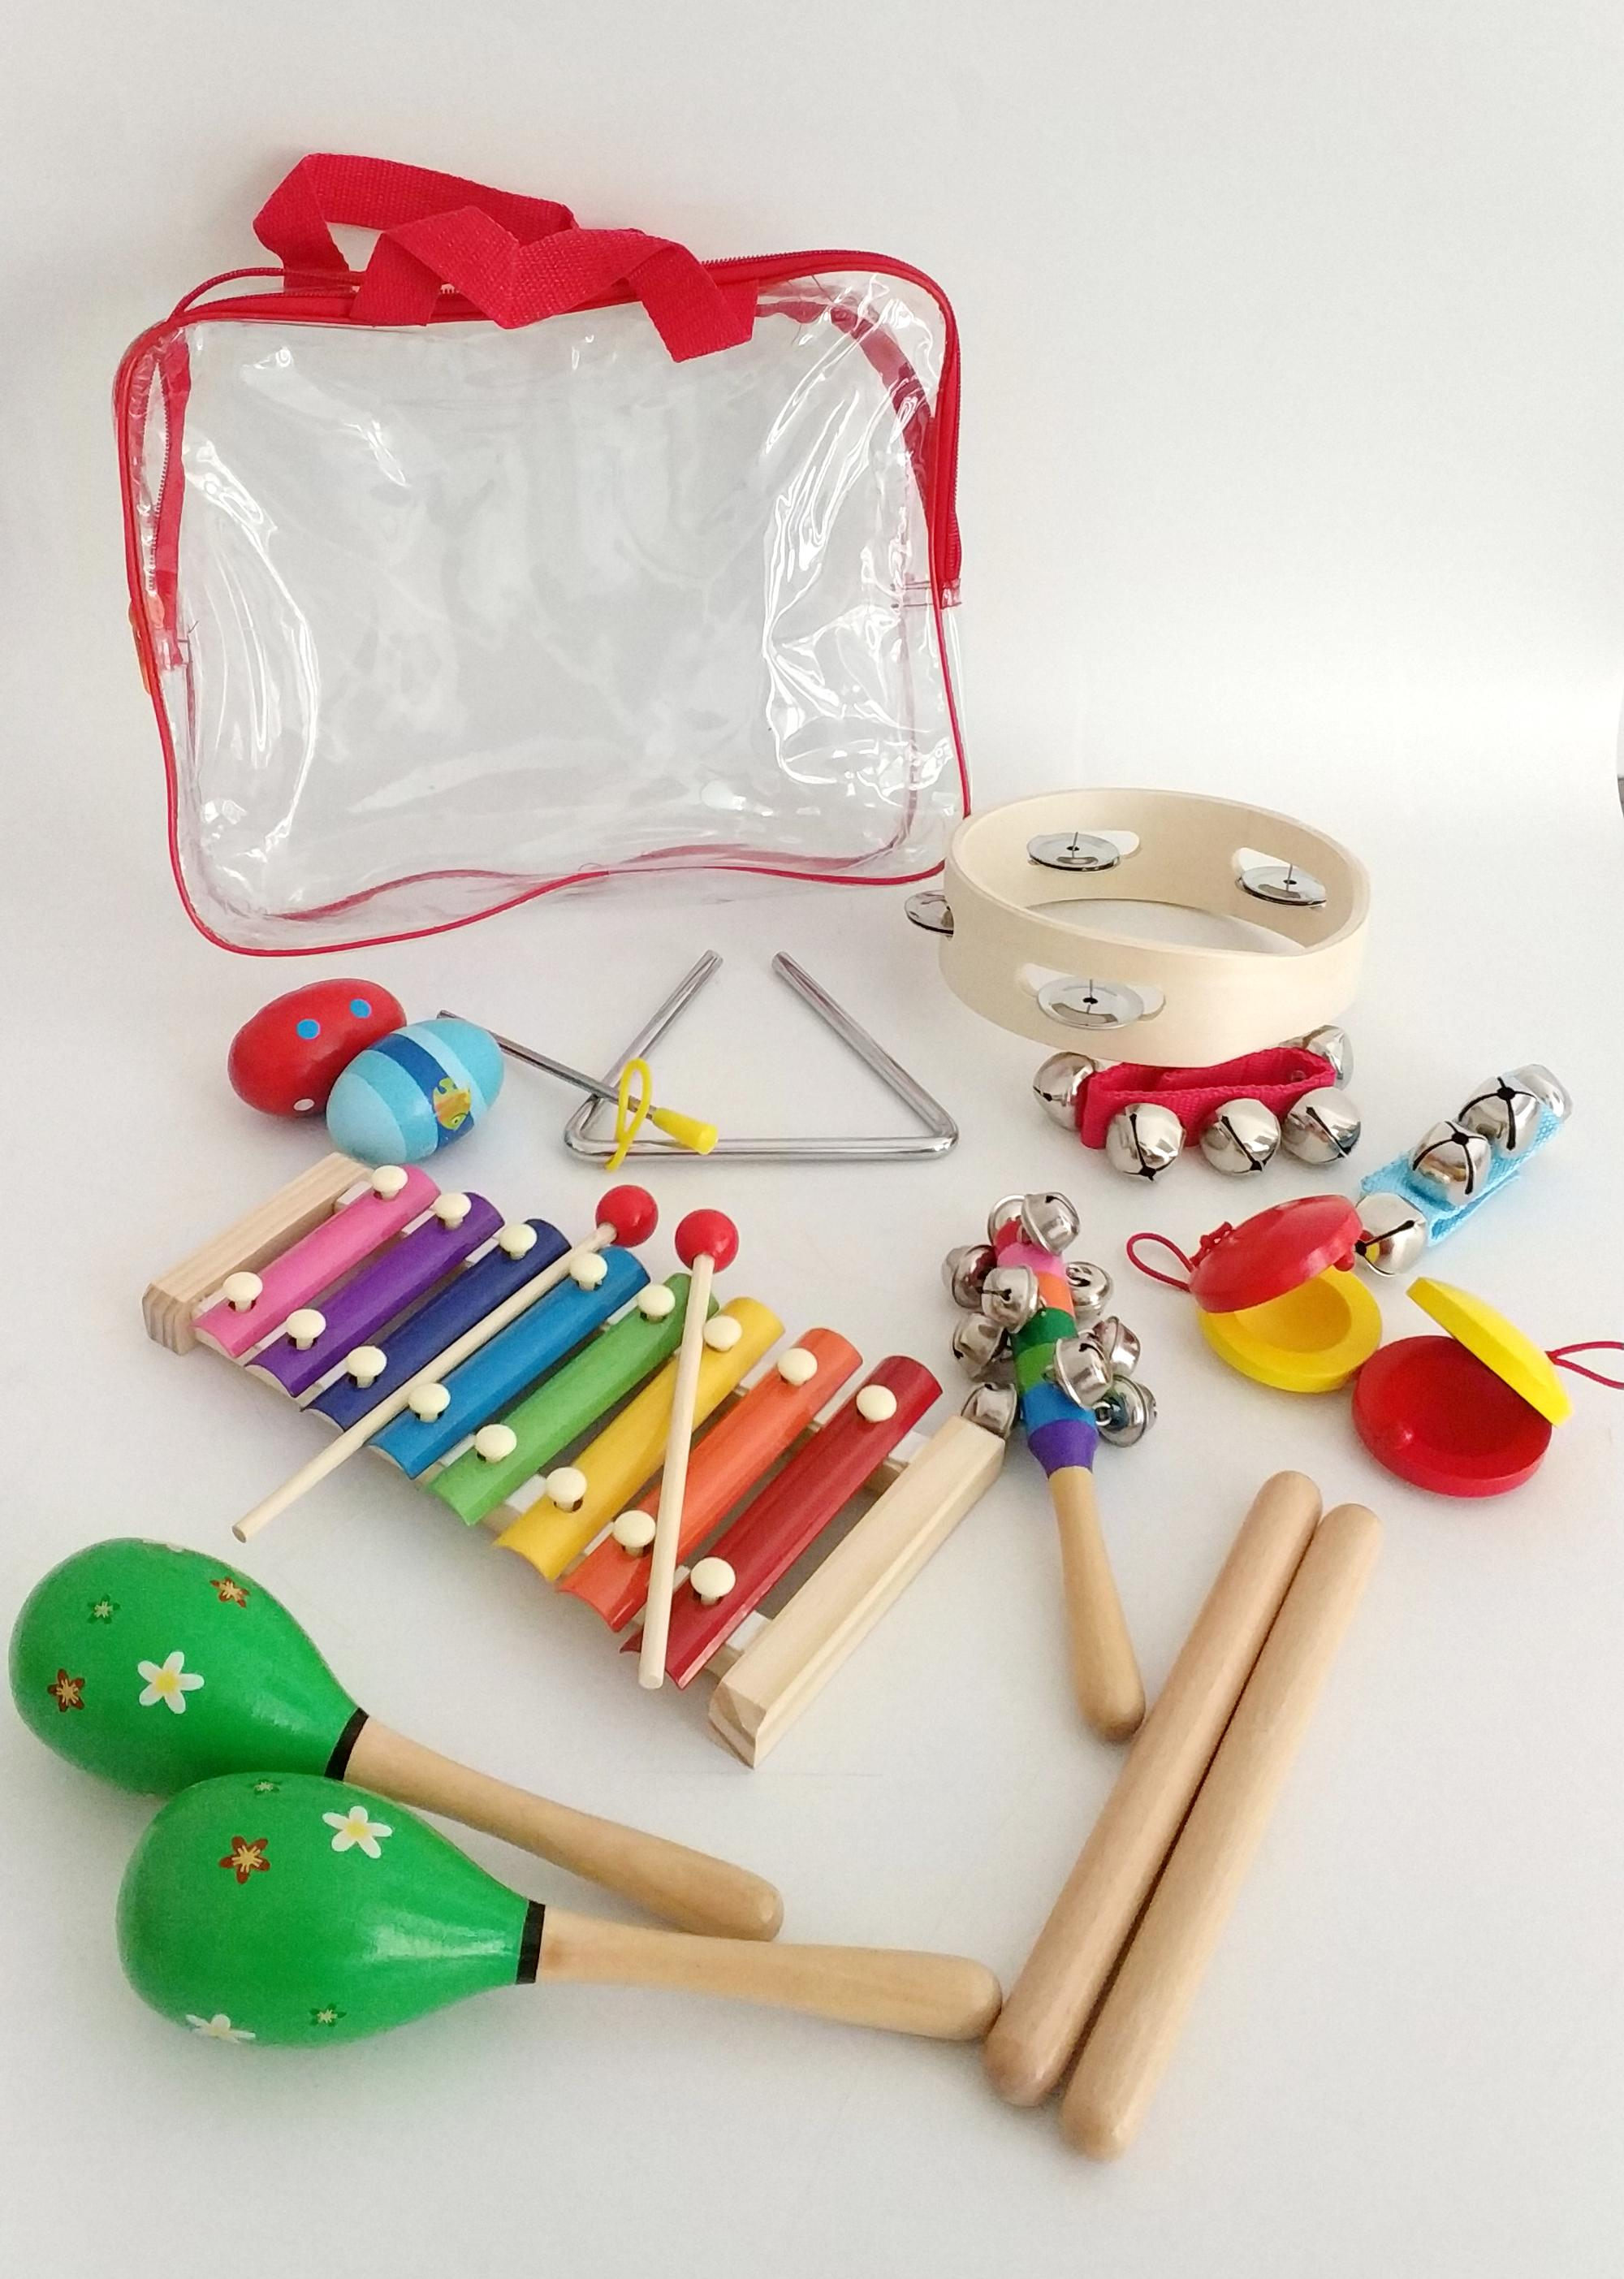 Multiple Kids' Wooden Music Sets, Xylophone Maracas Claves Wrist Bells Tambourine Finger Castanets Music Instrument